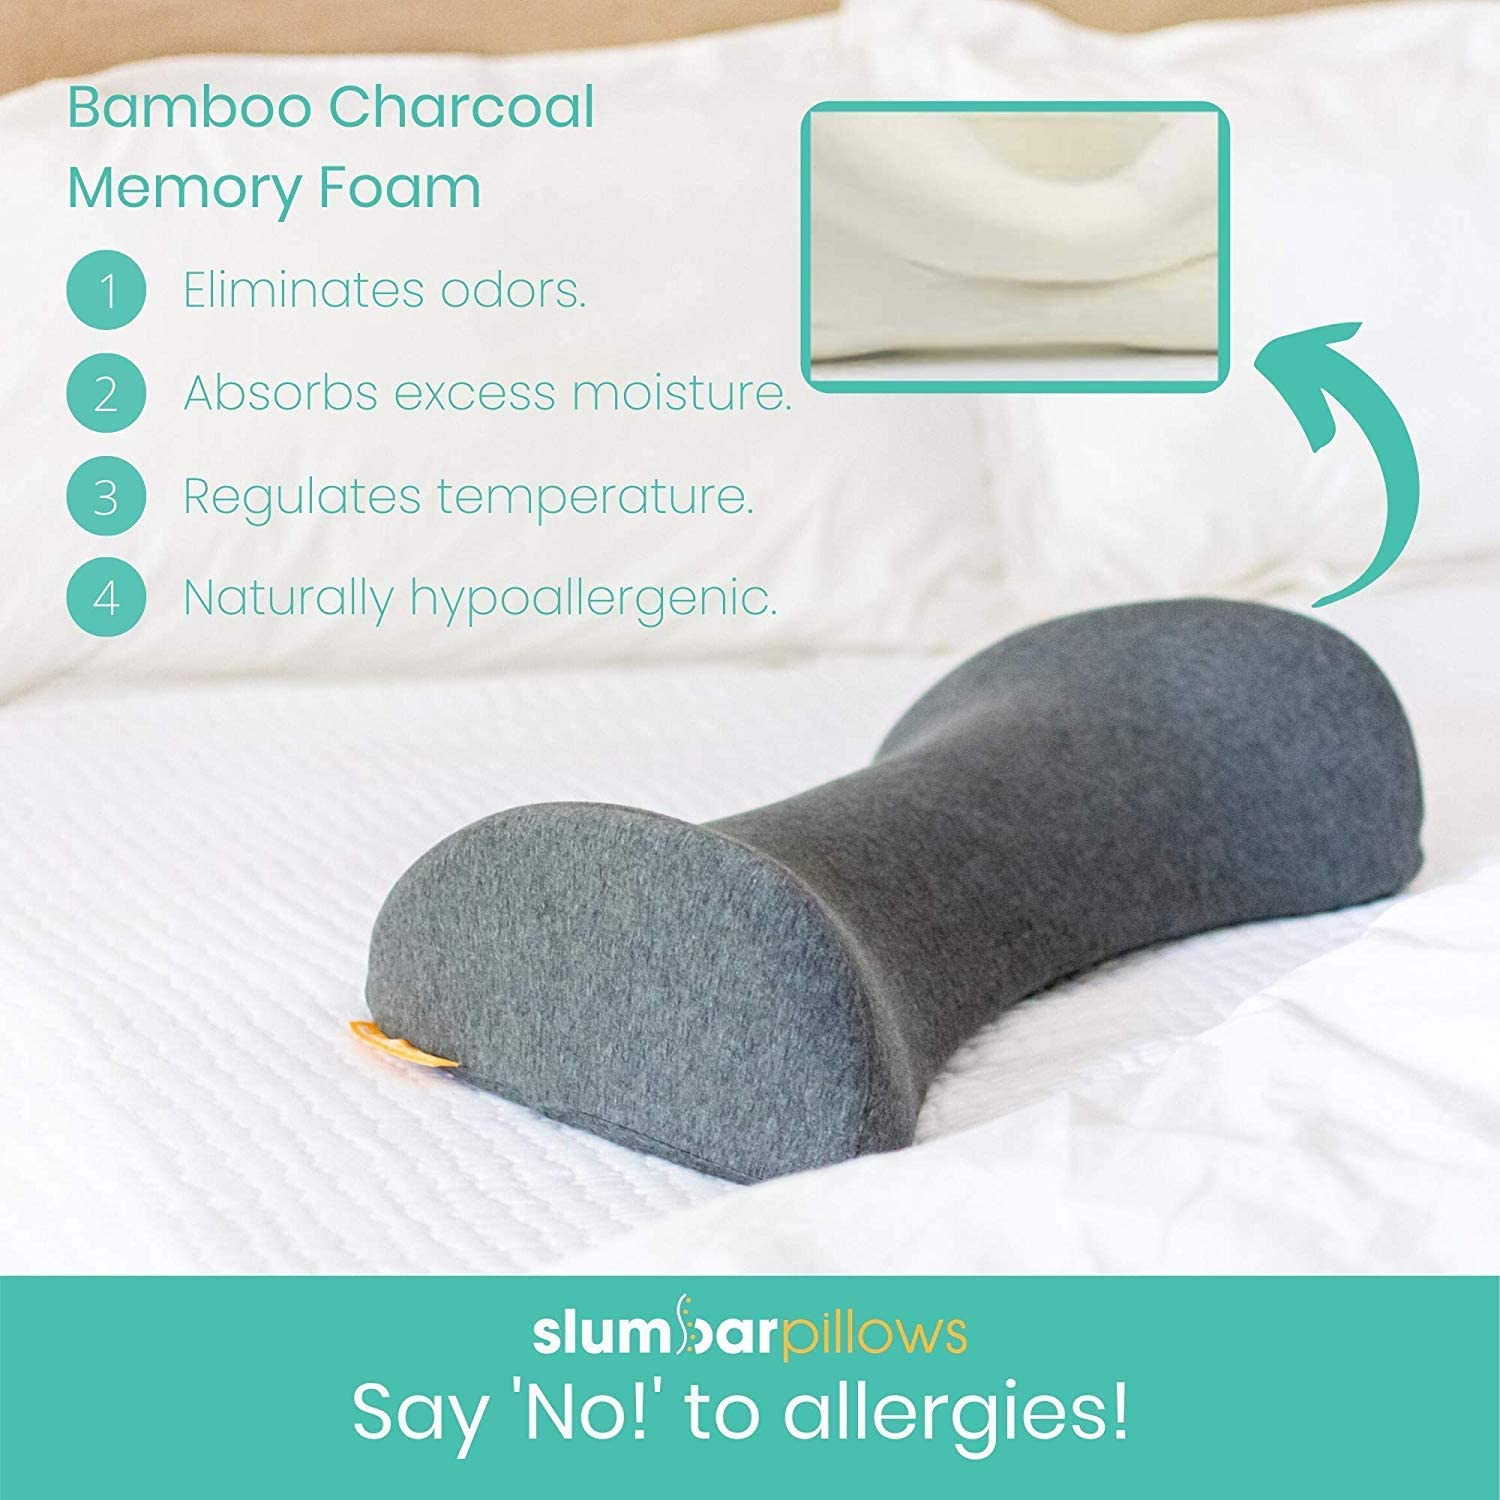 High-Grade Bamboo Charcoal Memory Foam Specific User Guide Provided   Hypoallergenic Portable The Slumbar Sprout Pregnancy Pillow Official Pregnancy Pillow of American Pregnancy Association